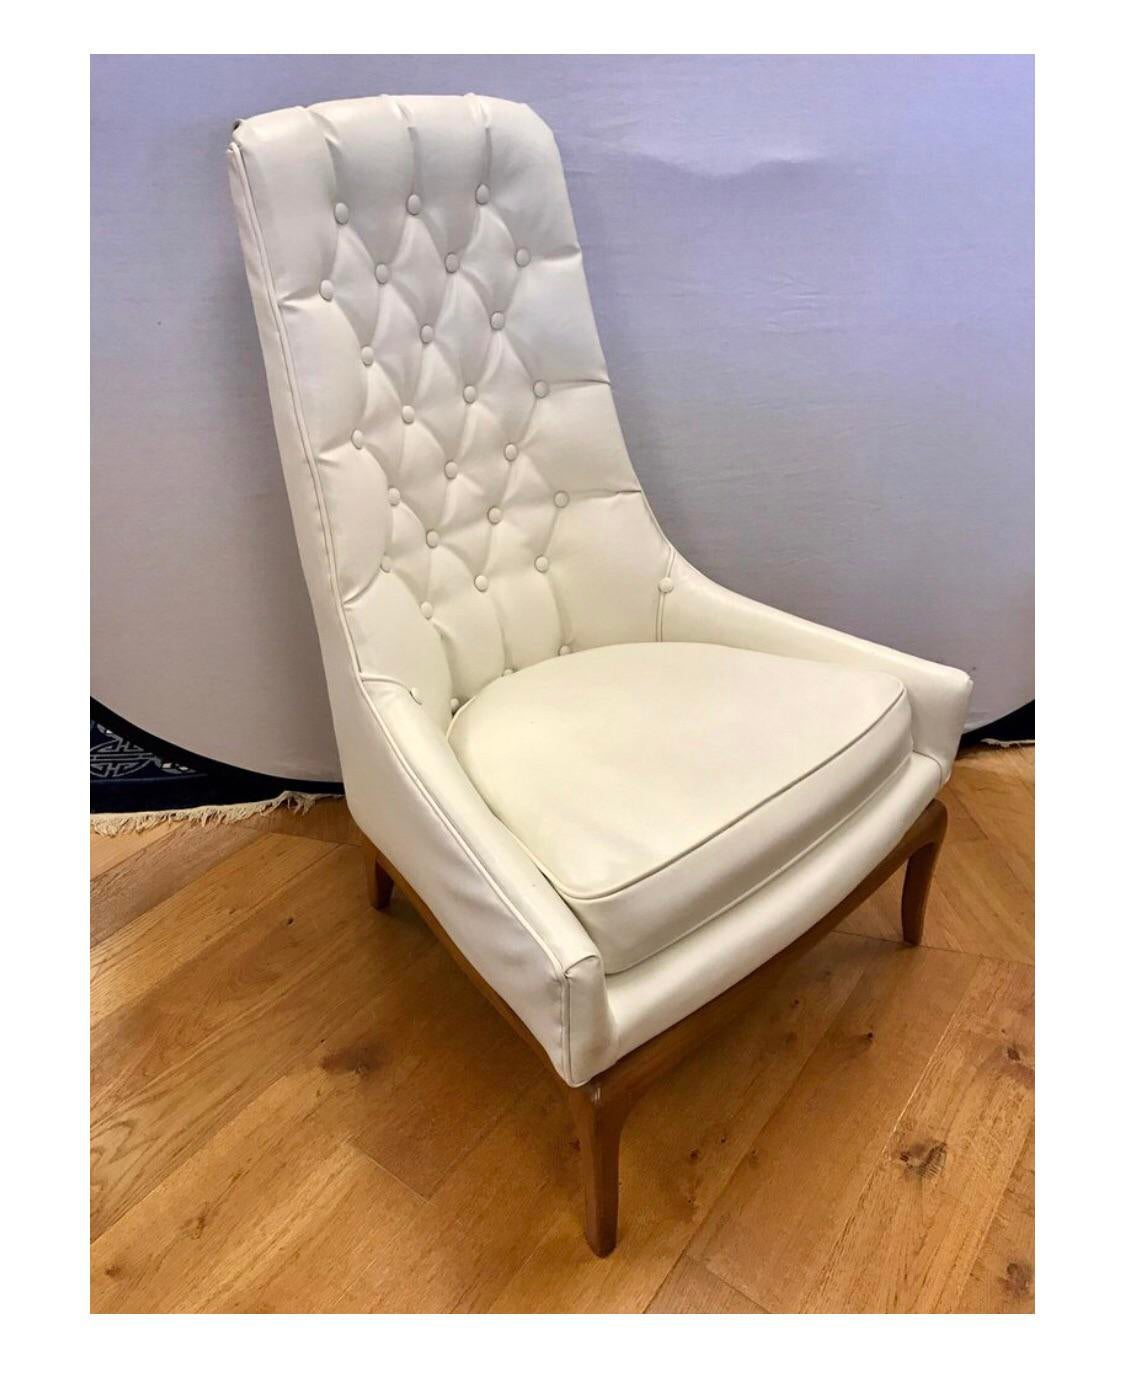 white tufted chair table height high superb mid century widdicomb robsjohn gibbings quilted pair of button chairs done in a faux leather that looks like the